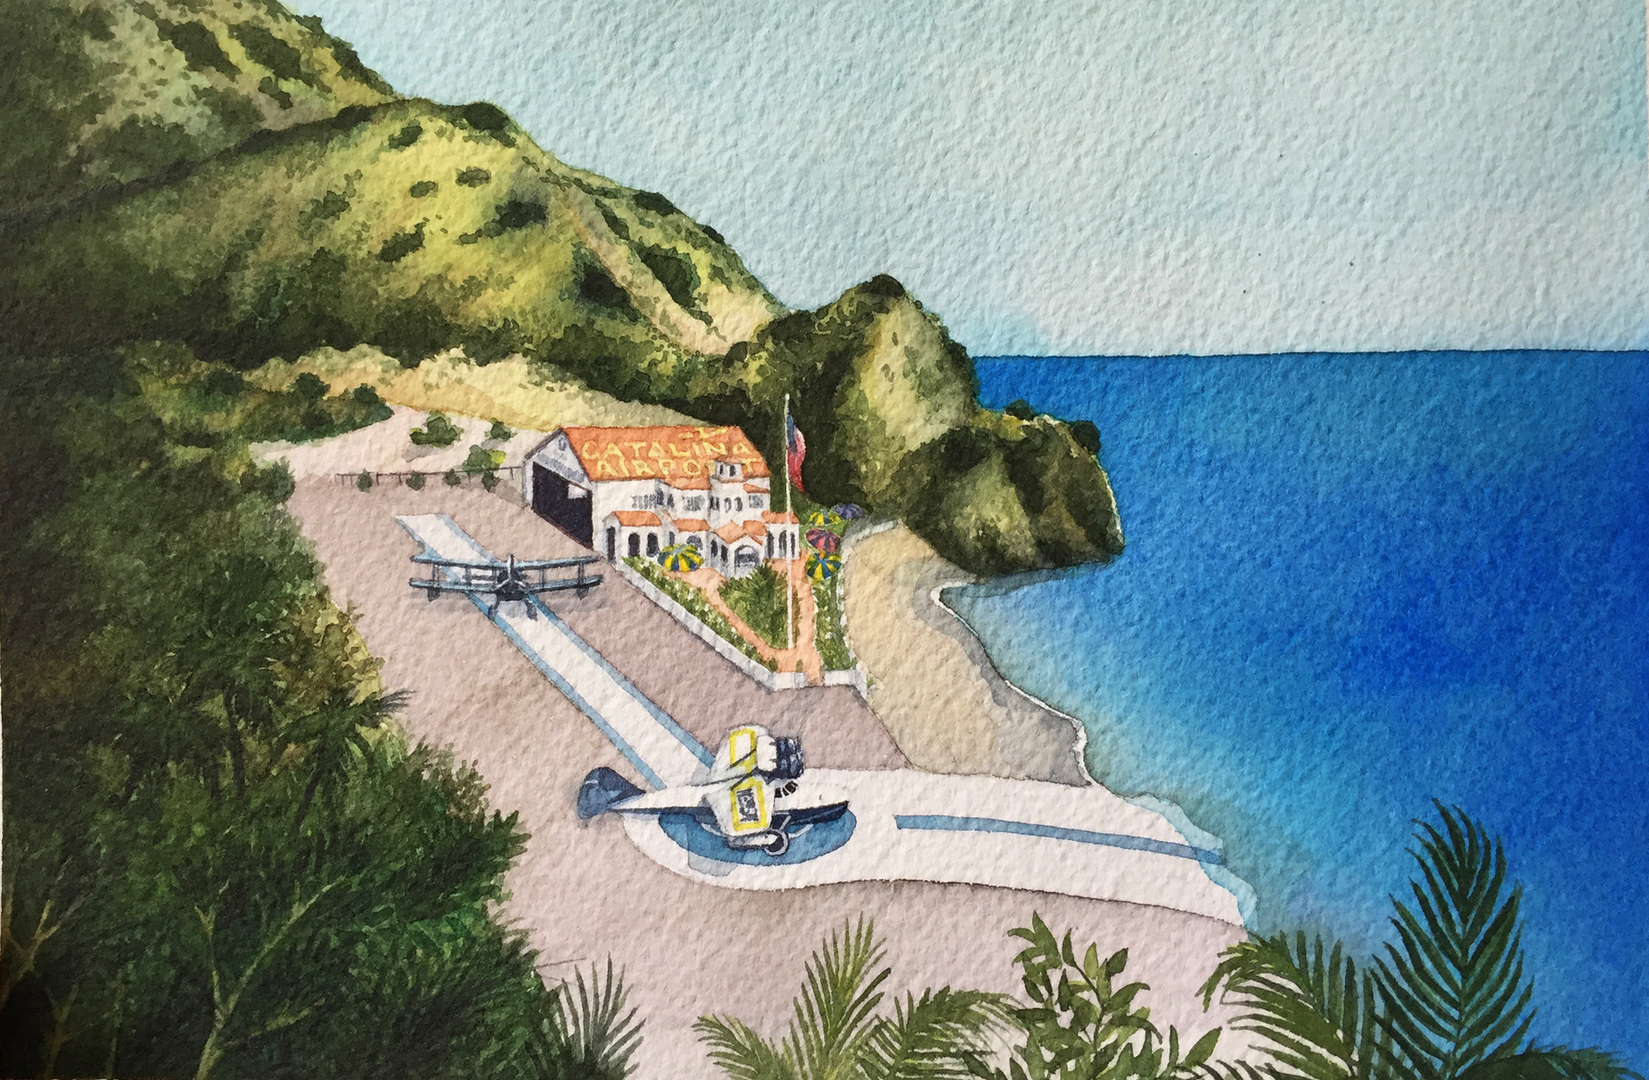 Santa Catalina Island Airport, 1930s (Watercolor)